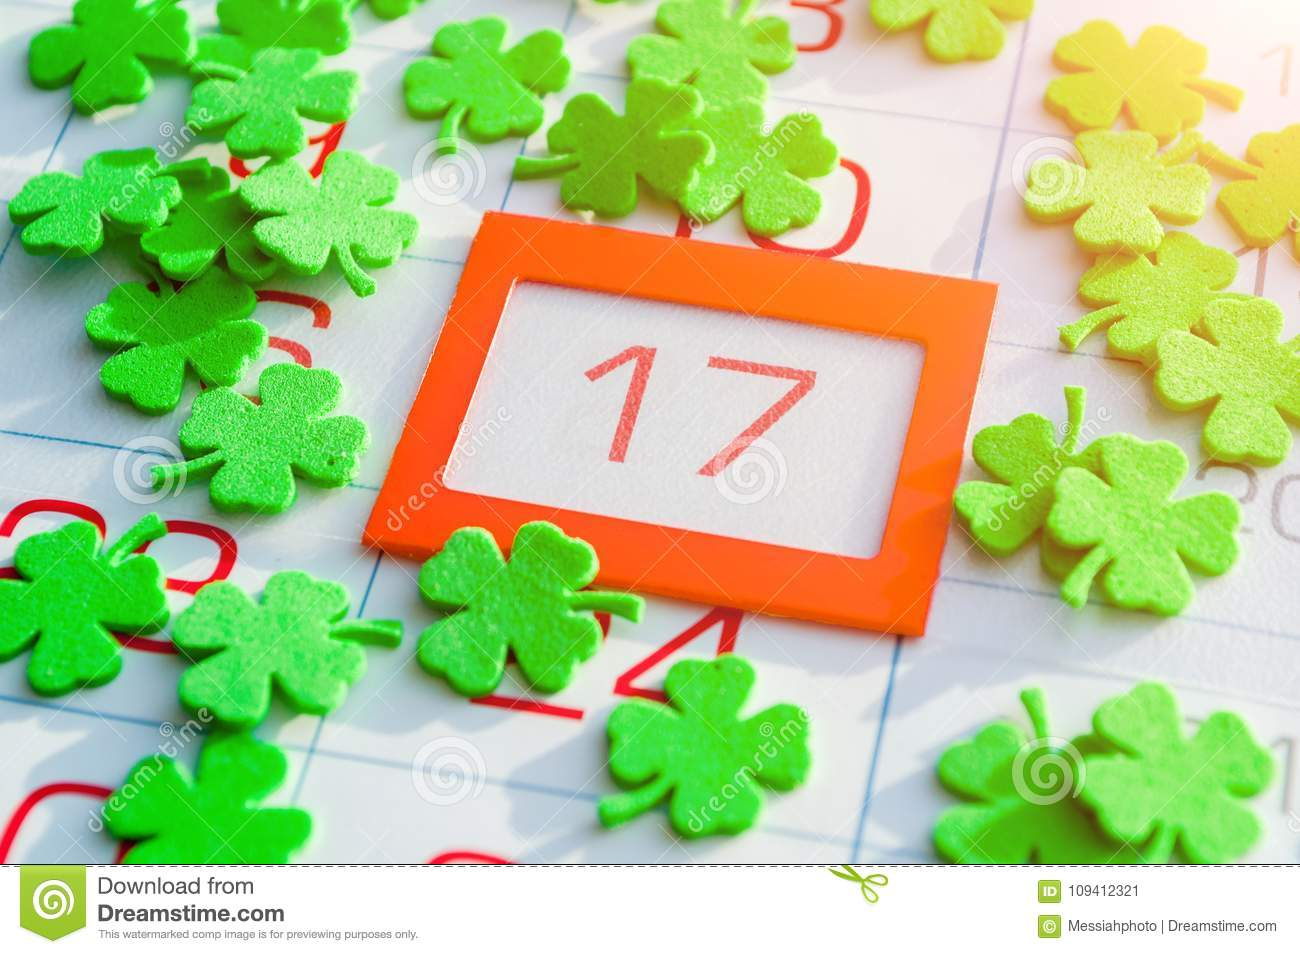 St Patrick`s Day festive background. Green quatrefoils covering the calendar with bright orange framed 17 March